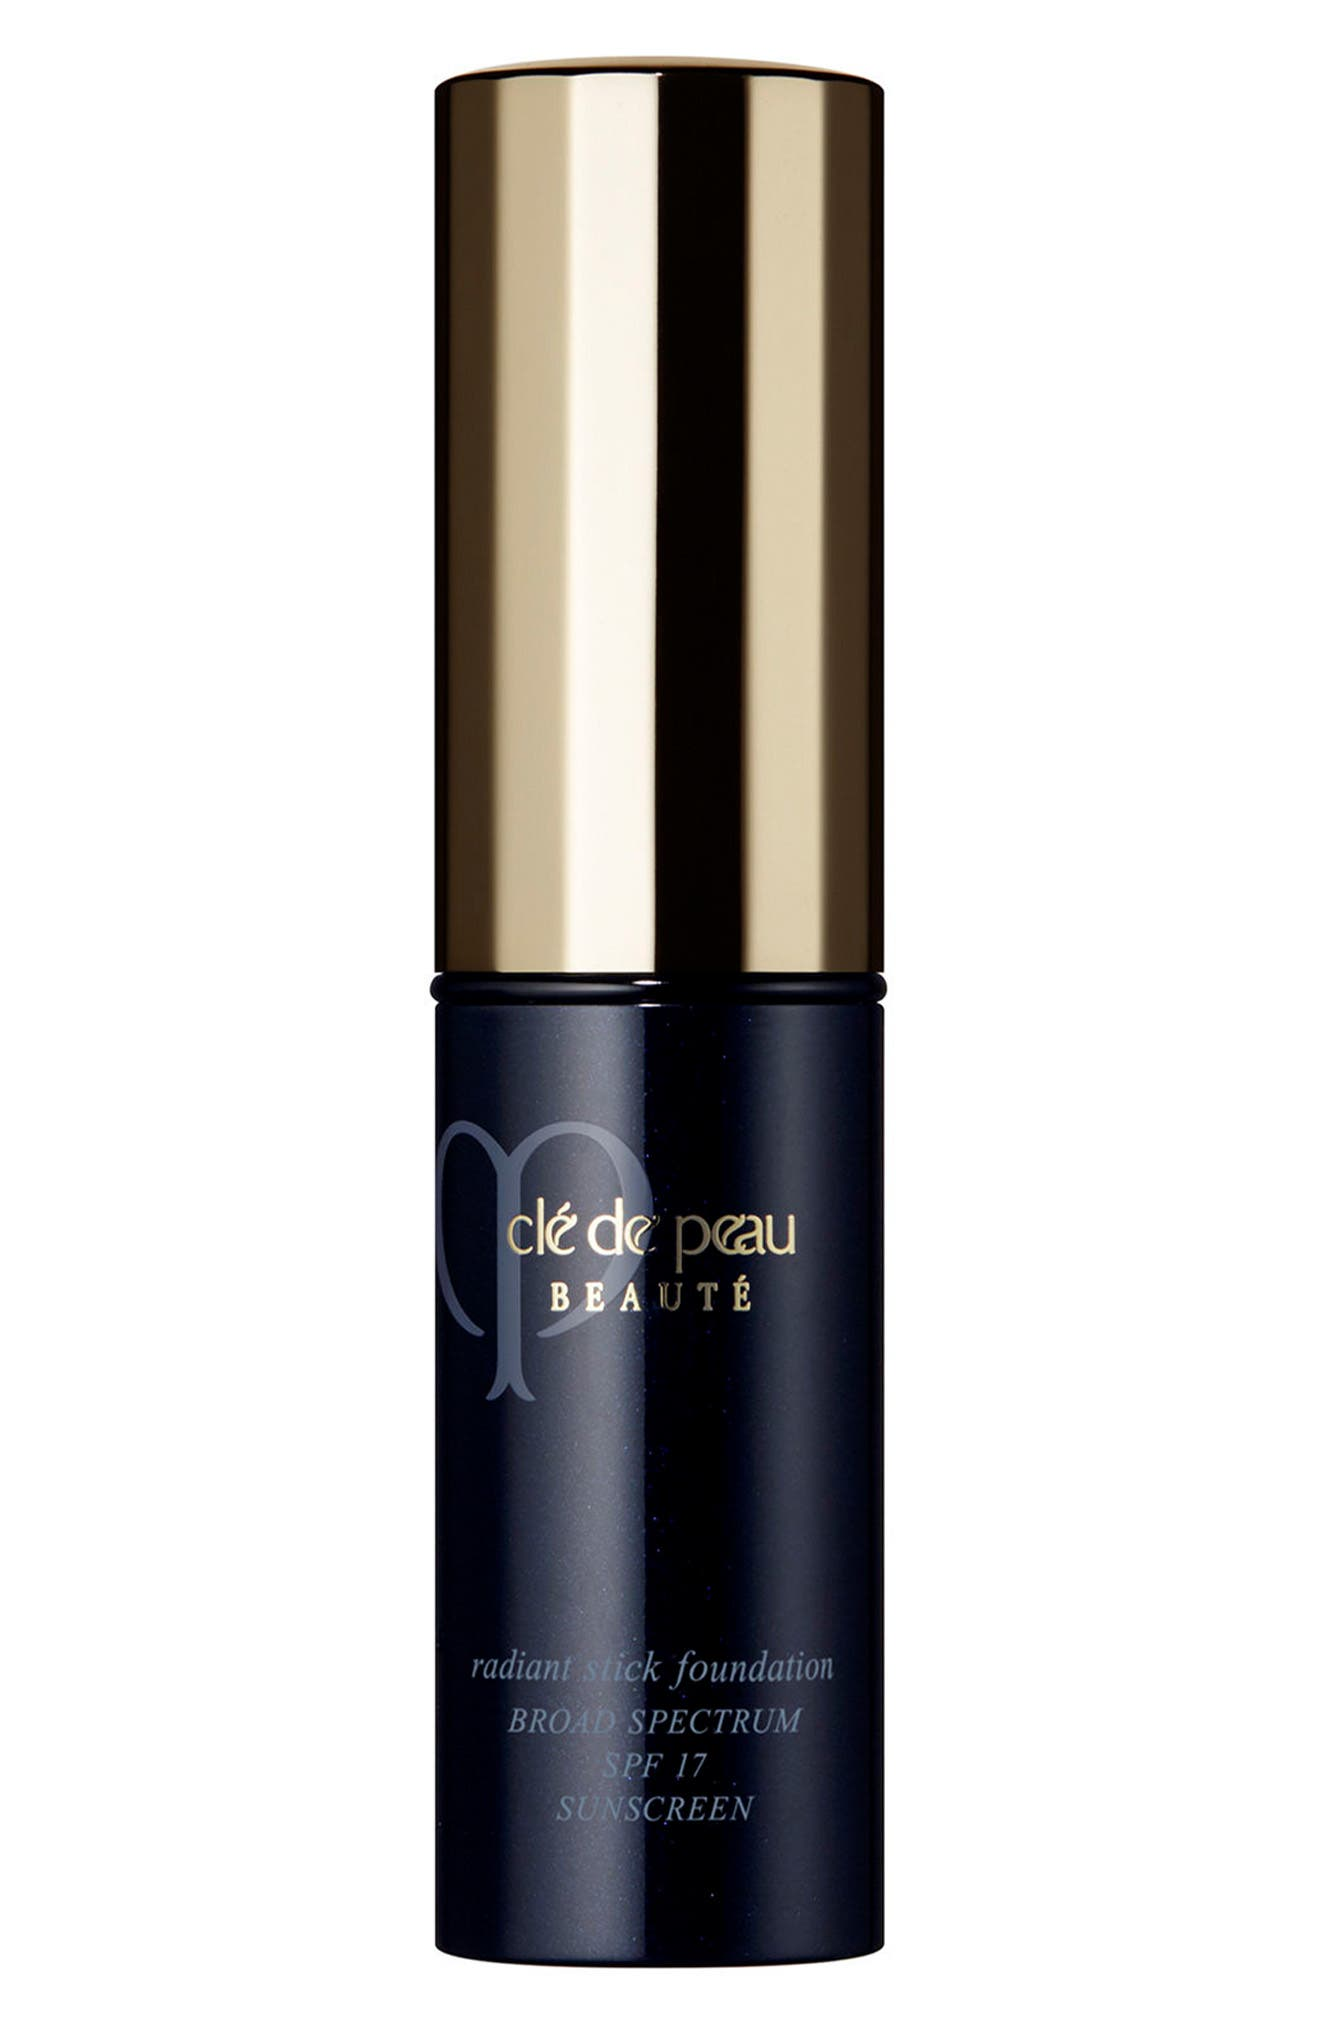 Radiance Stick Foundation Broad Spectrum SPF 17,                             Main thumbnail 1, color,                             IVORY